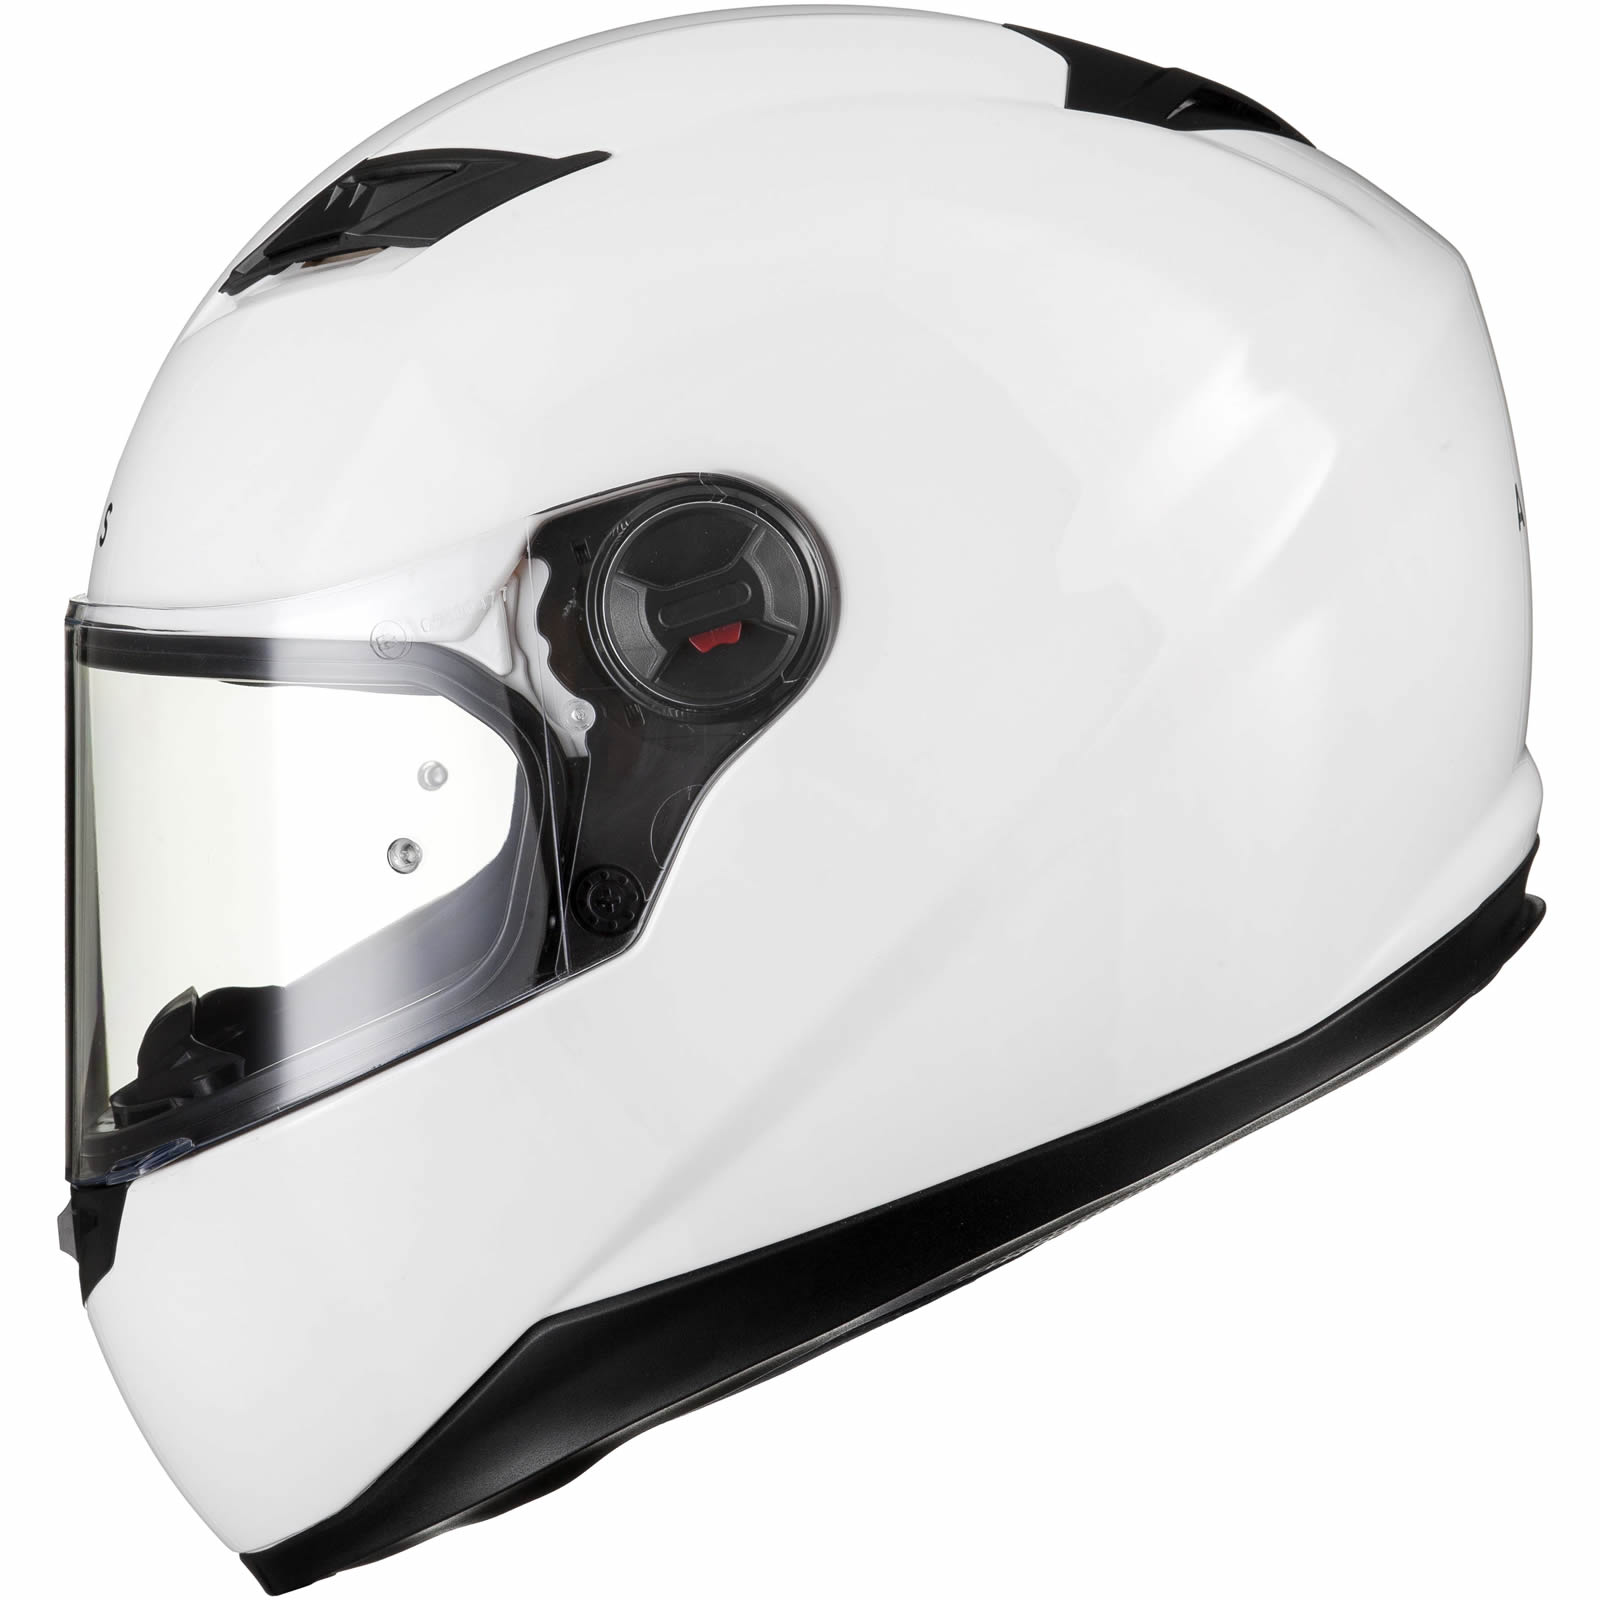 Agrius Rage Solid Motorcycle Helmet L Gloss White For Sale Online Ebay